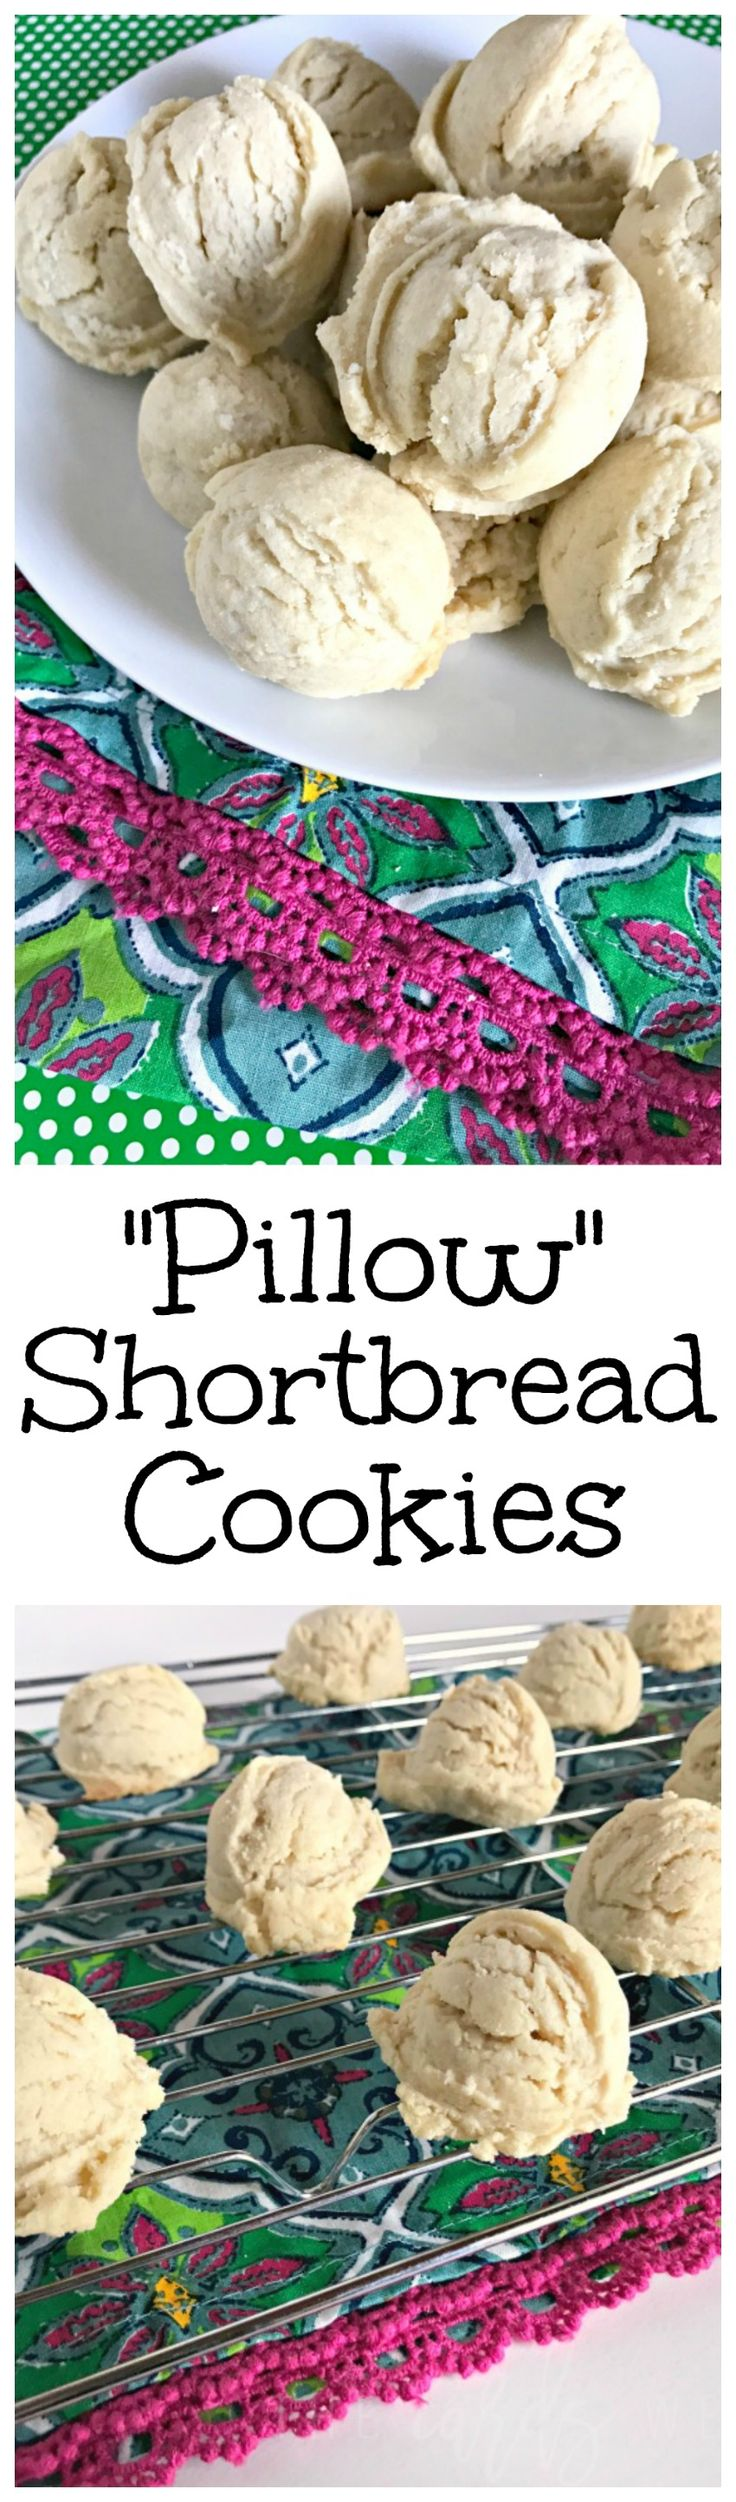 The BEST Shortbread Cookie recipe! AD https://thecardswedrew.com/holiday-pillow-shortbread-cookies/